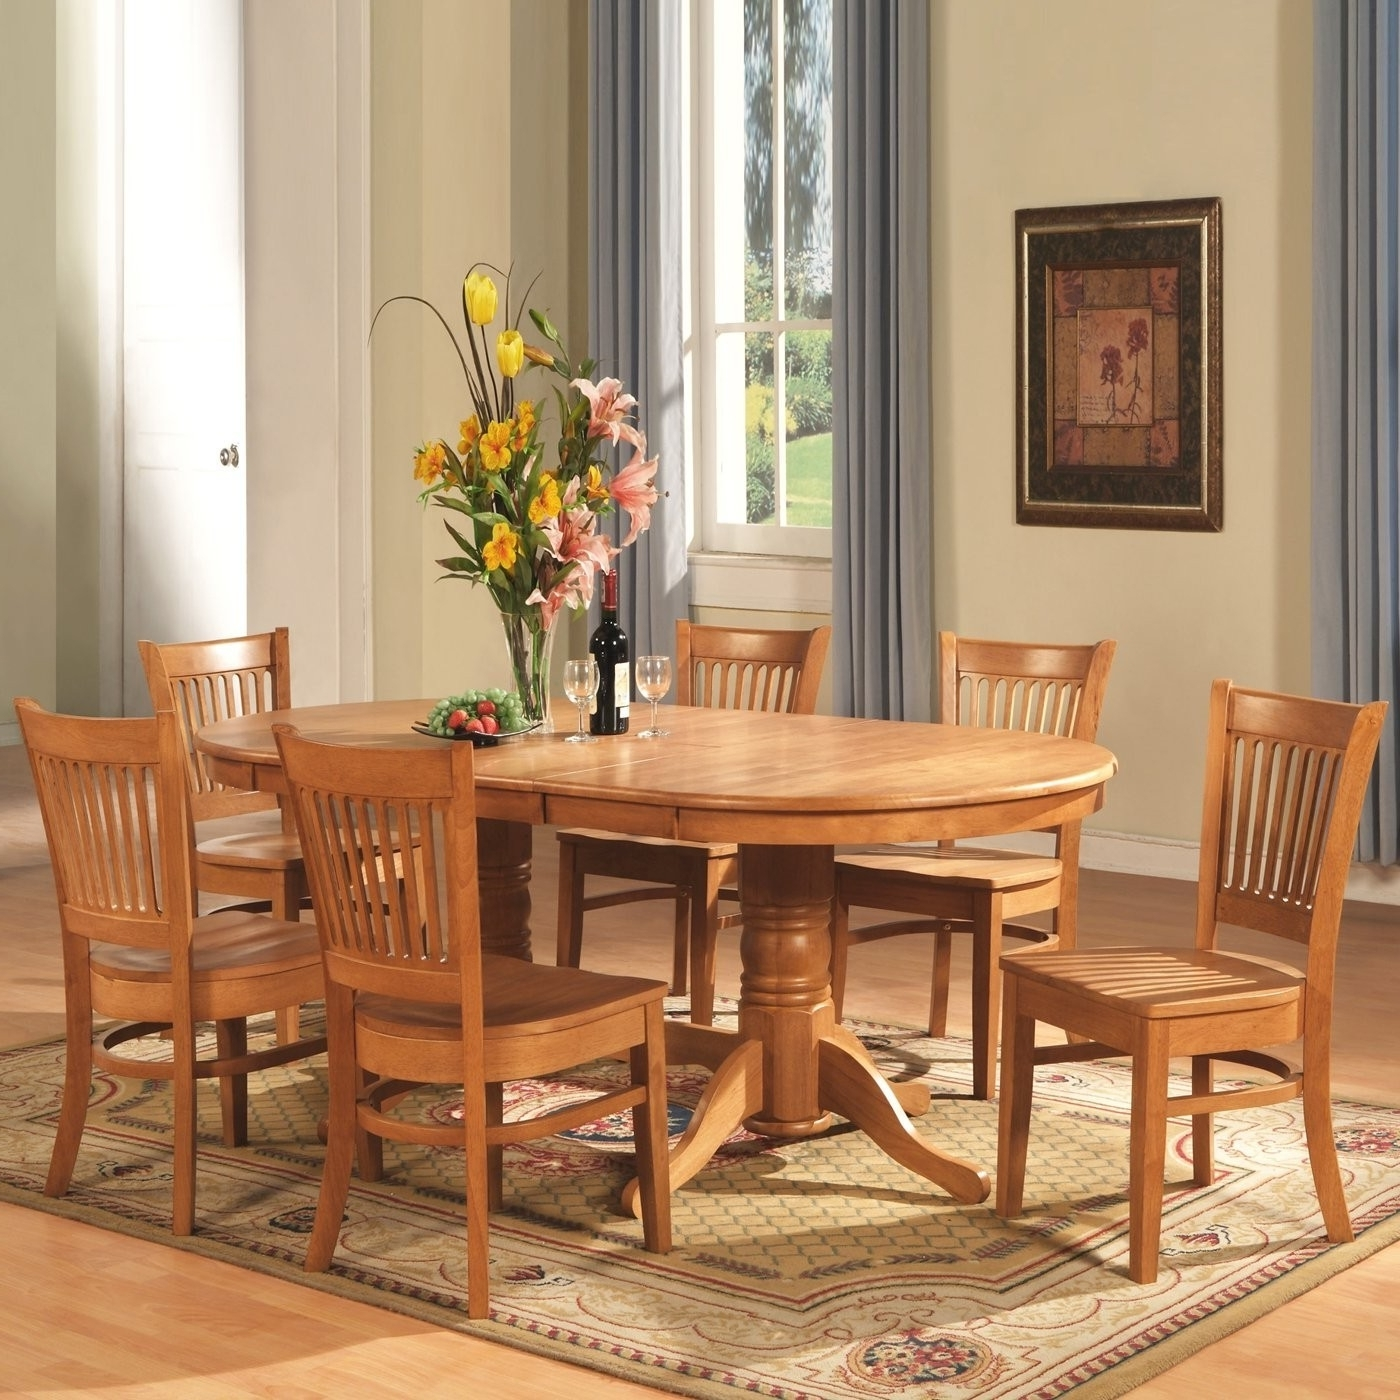 Solid Oak Dining Room Table And 8 Chairs Best Of Inspirational Oak Pertaining To Popular Oak Dining Set 6 Chairs (View 24 of 25)